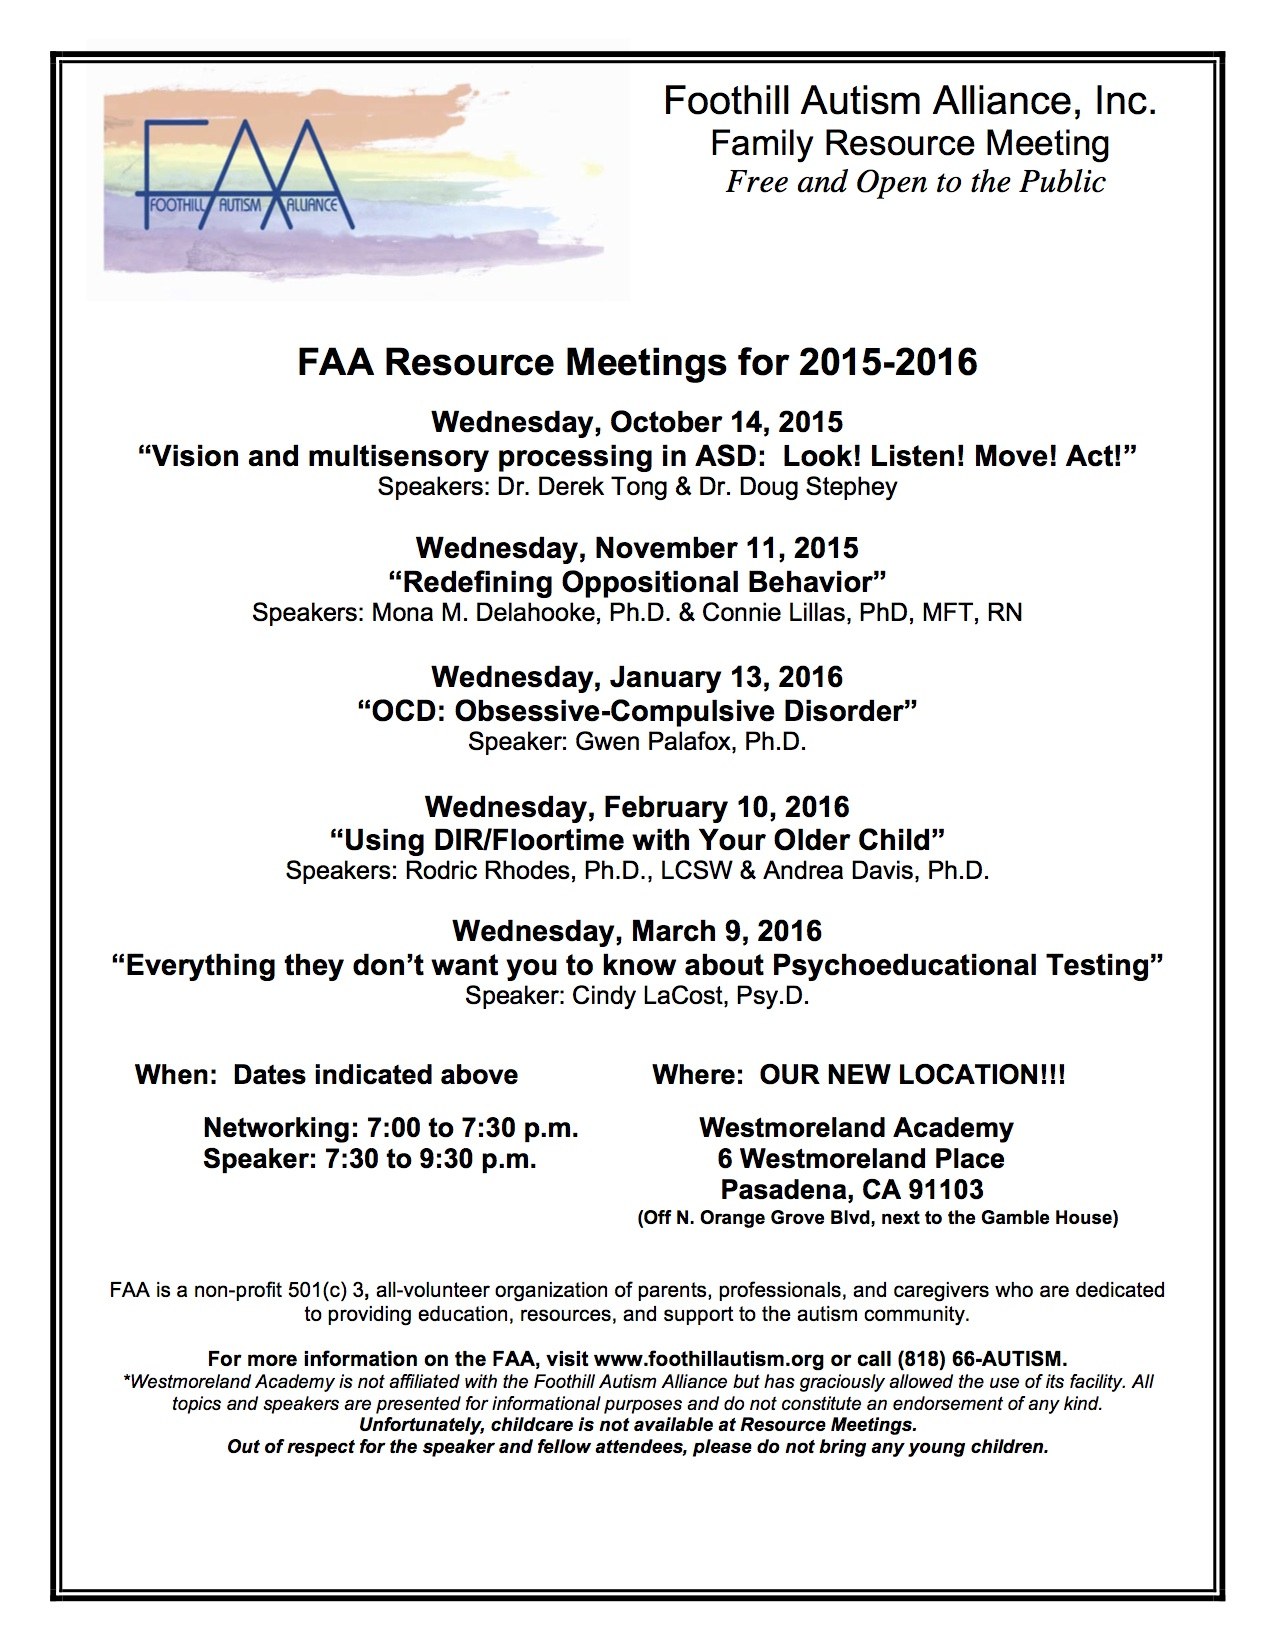 Foothill_Autism_Alliance_Upcoming_meetings_2015-16.jpg